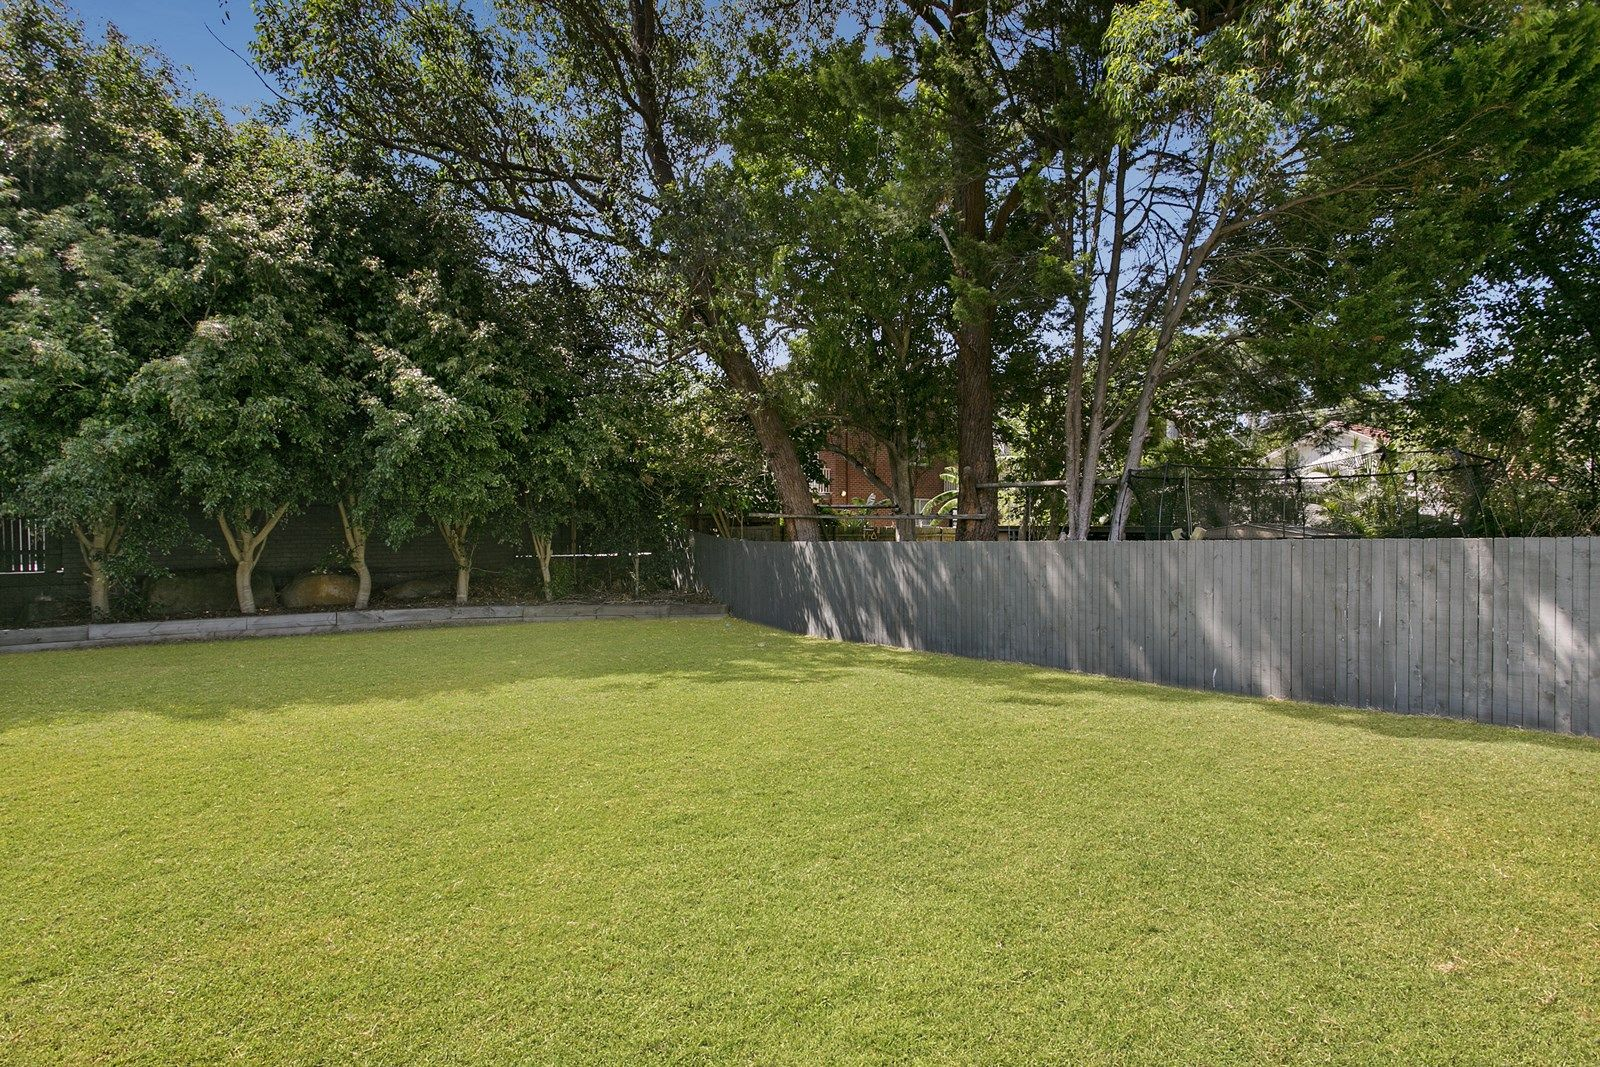 2/54 Burchmore Road, Manly Vale NSW 2093, Image 2